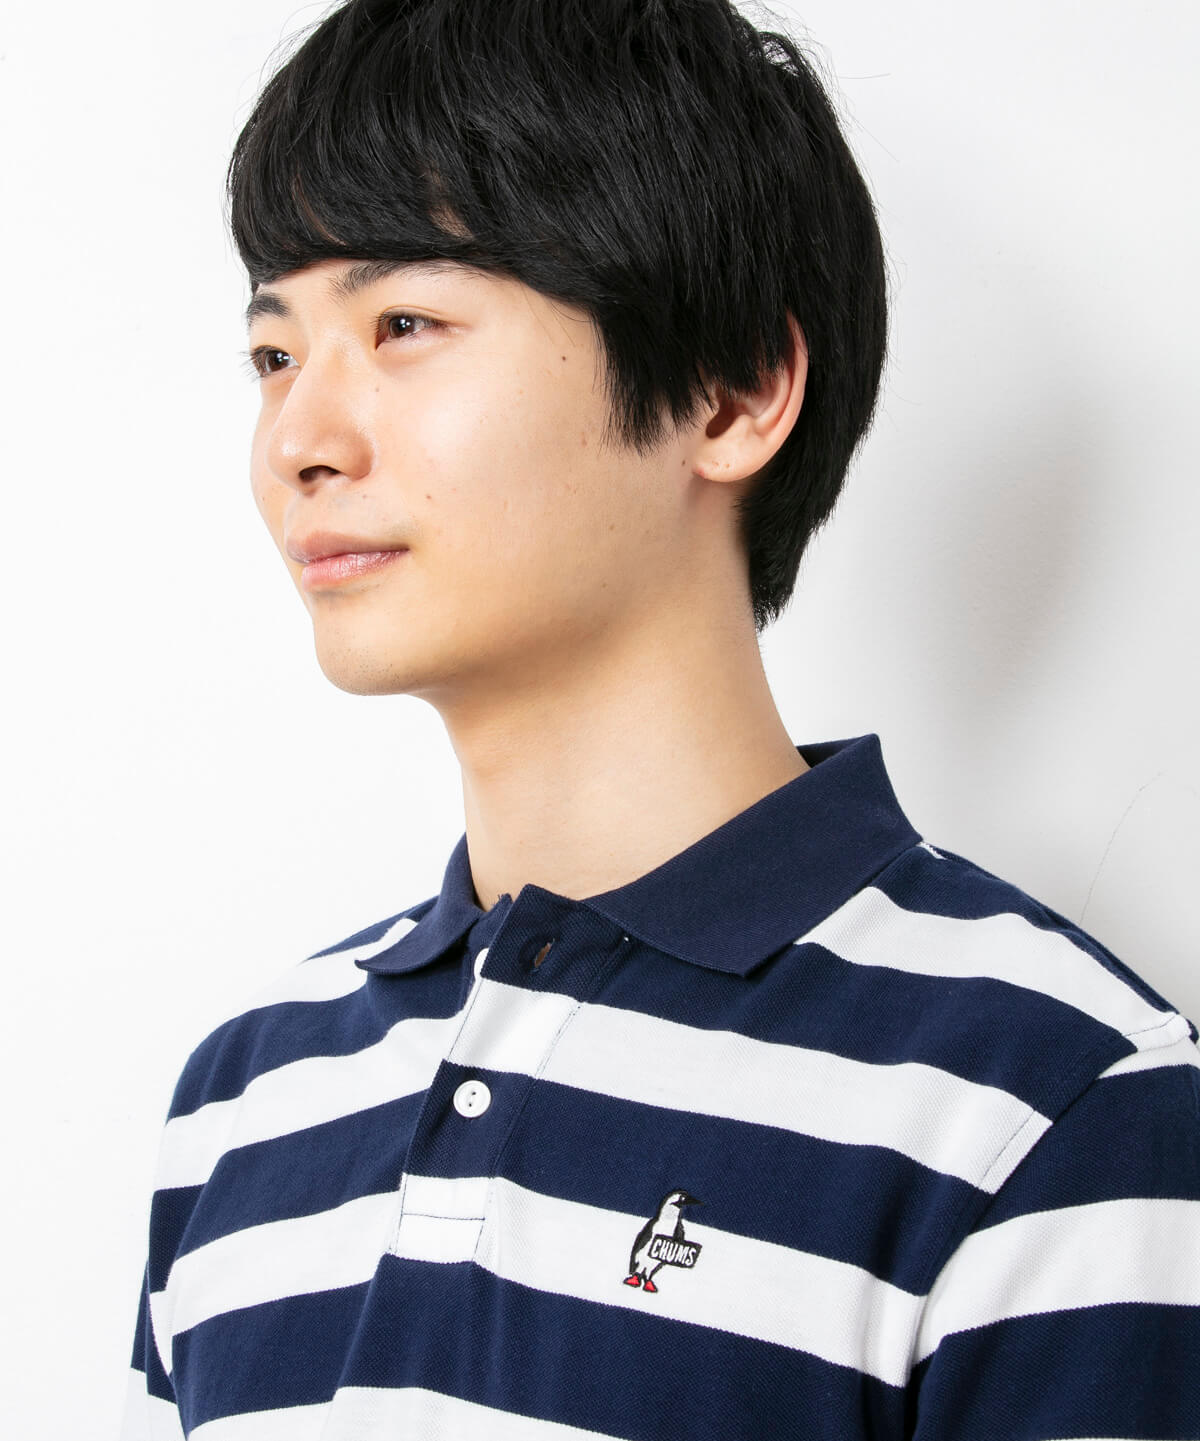 Booby Border L/S Polo Shirt(ブービーボーダーロングスリーブポロシャツ(ポロシャツ))